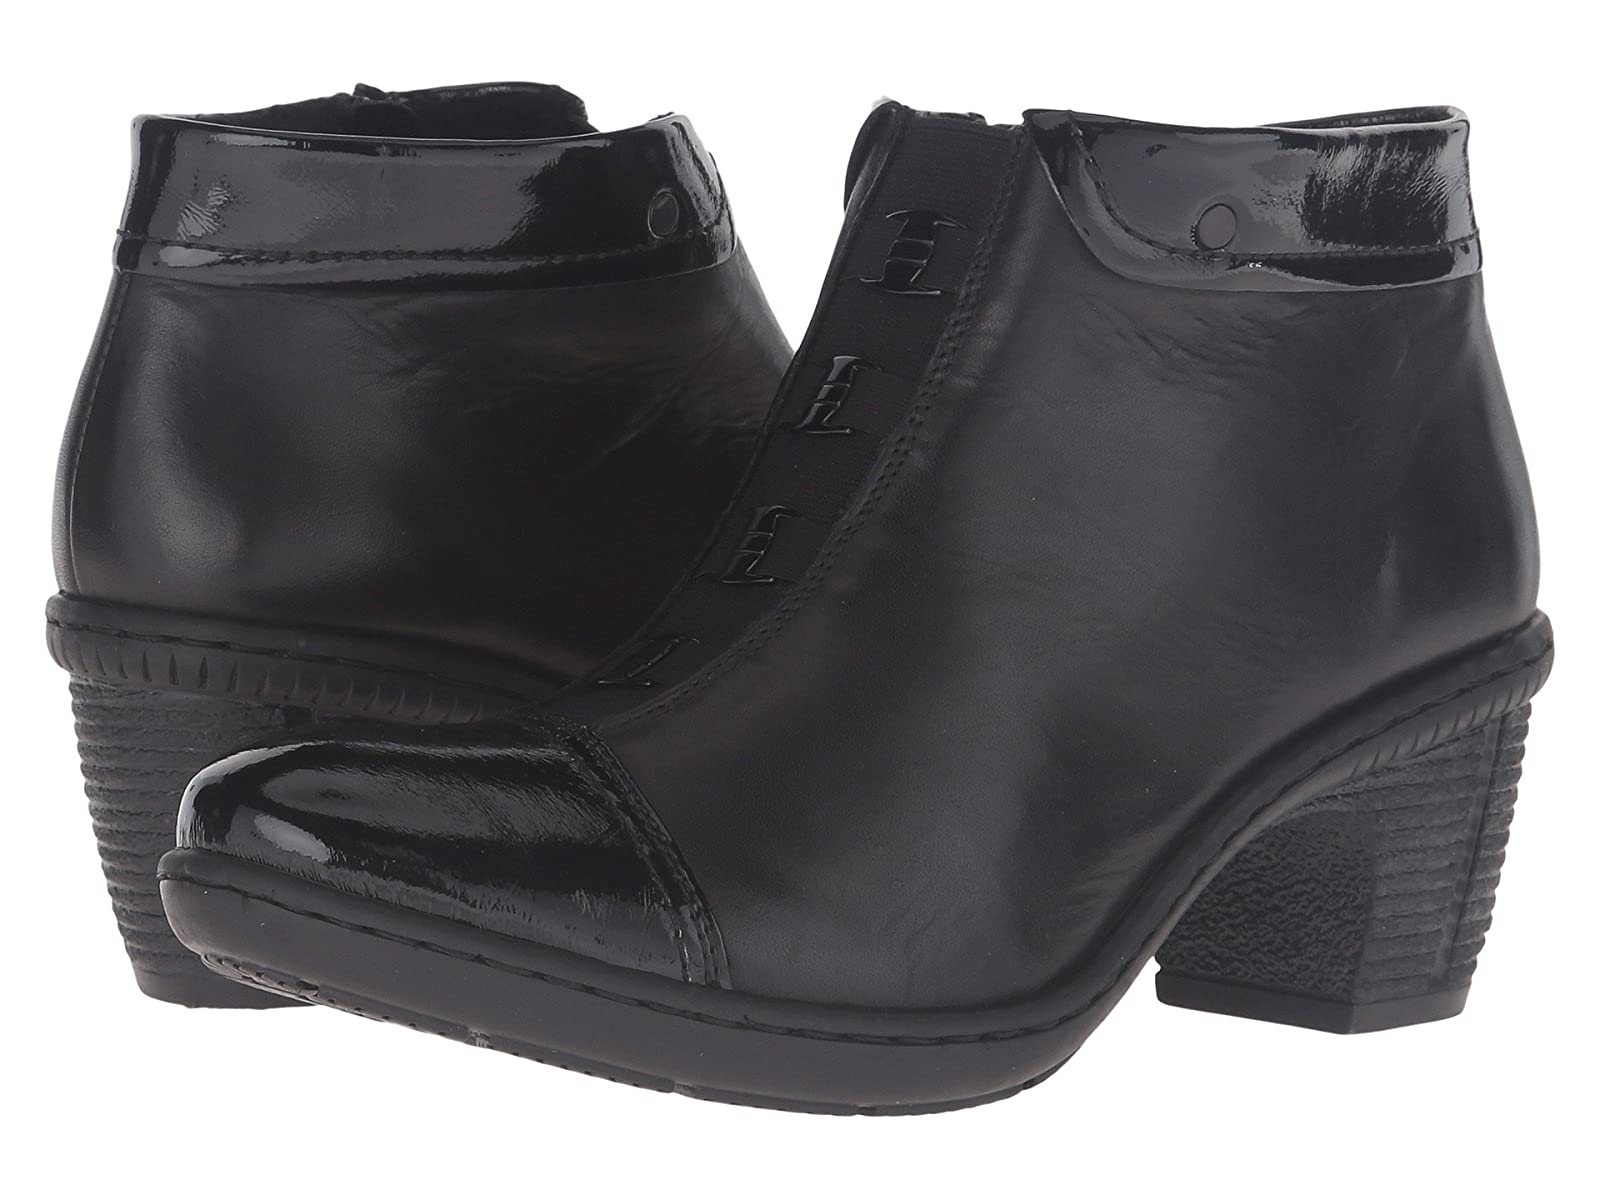 Rieker 50292Cheap and distinctive eye-catching shoes